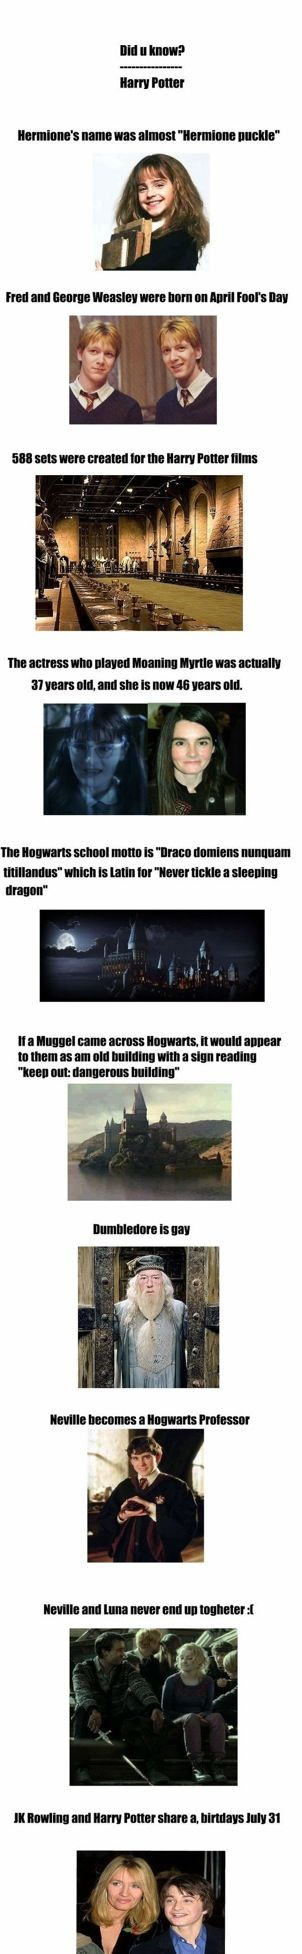 Cool Facts about Harry Potter